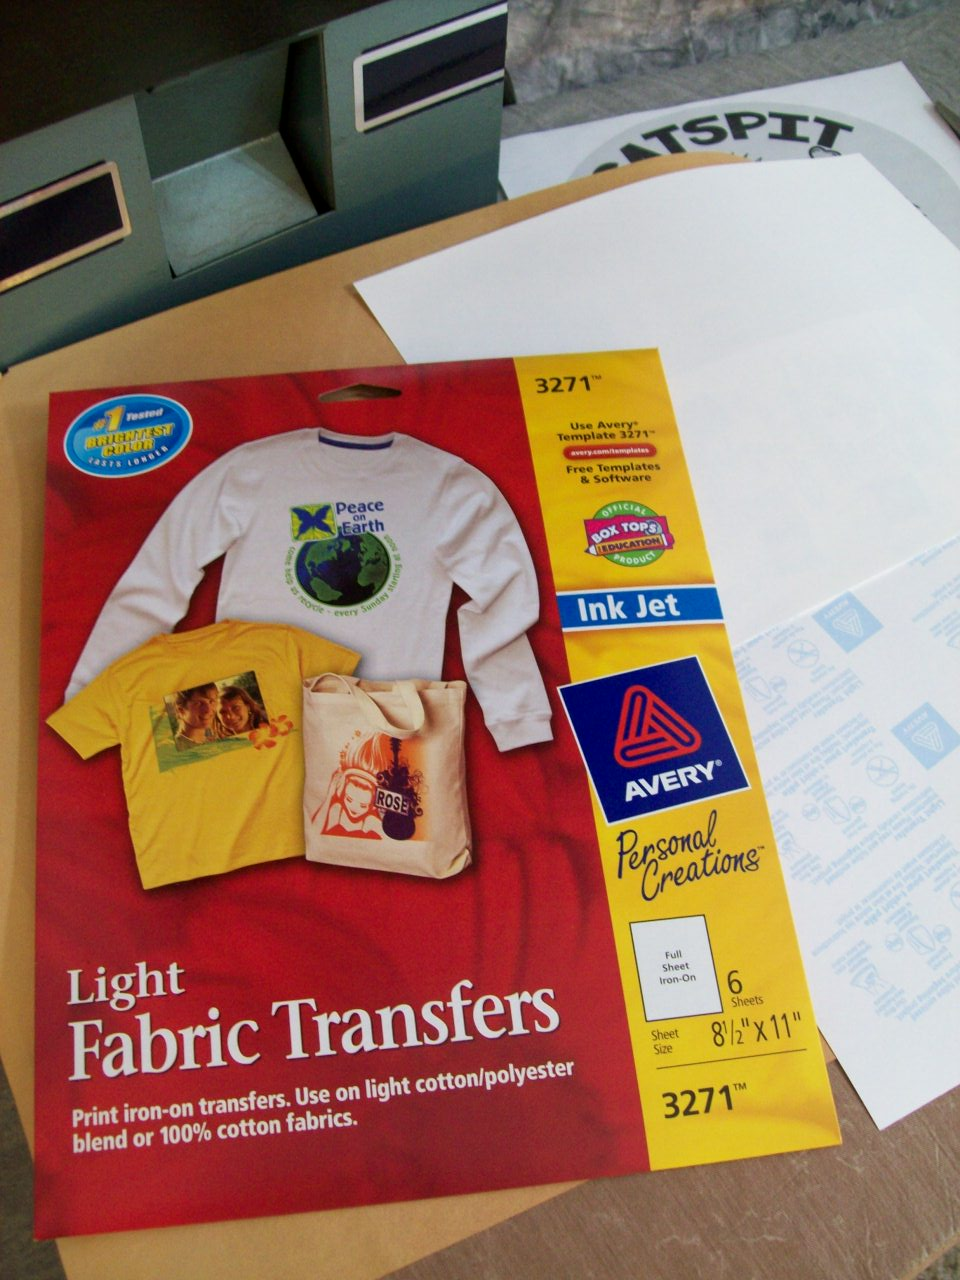 How To Print Digital Heat Transfers For Tee Shirts Learn How To